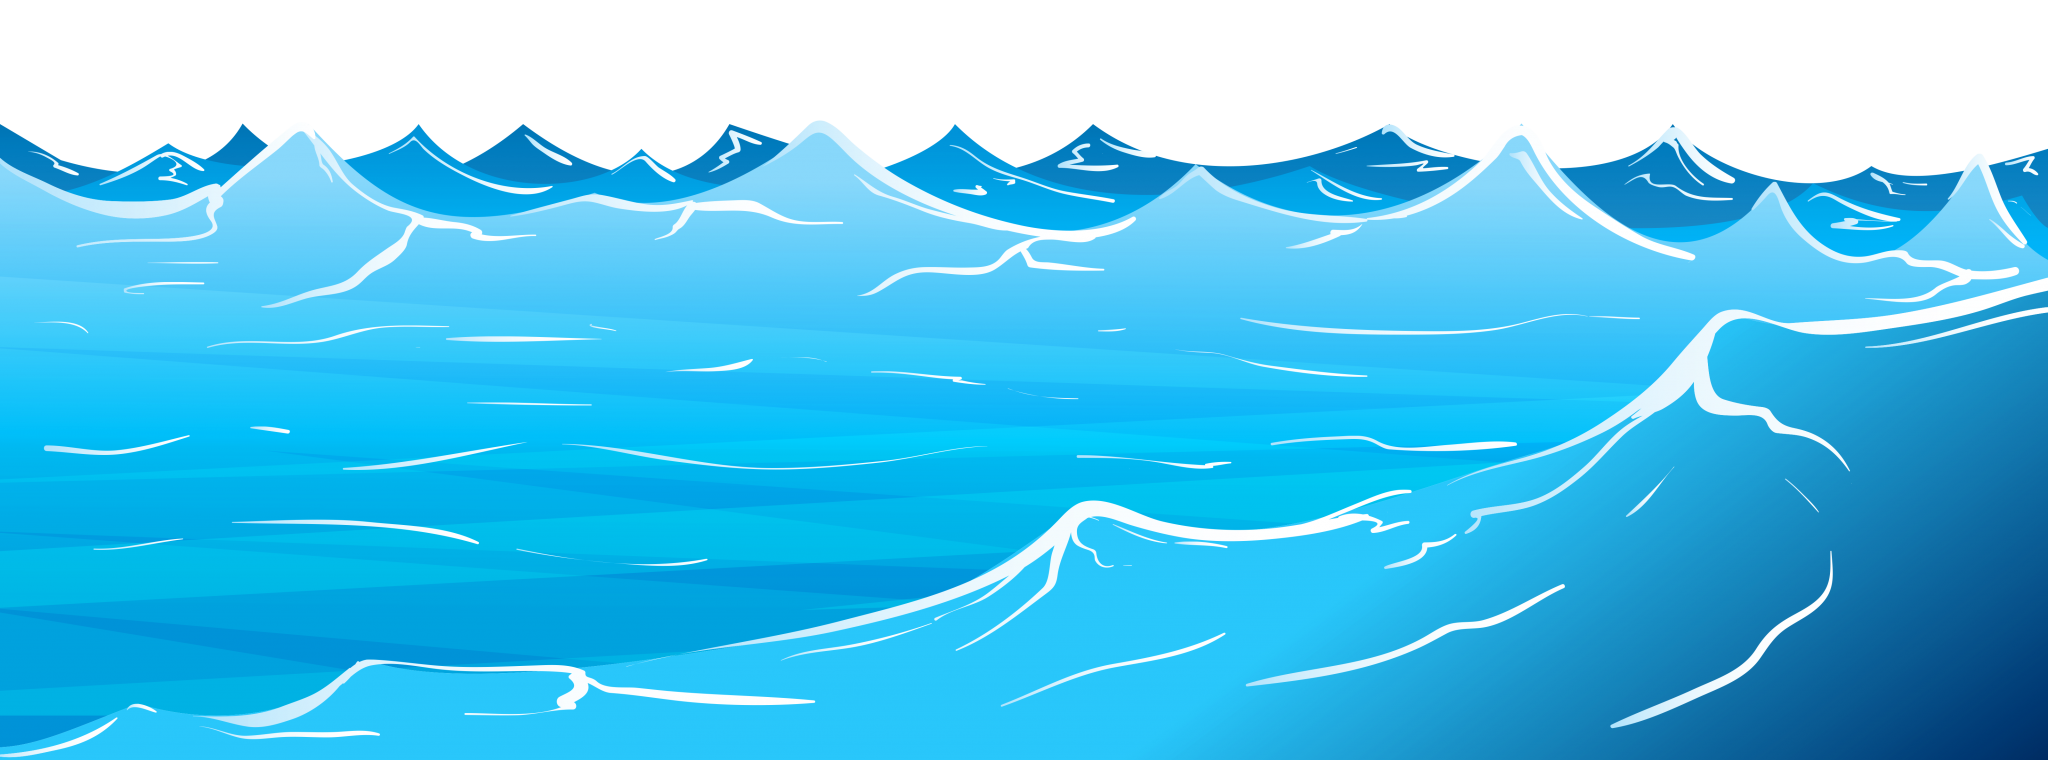 Waves clipart wave hokusai. Hd widescreen wallpapers backgrounds